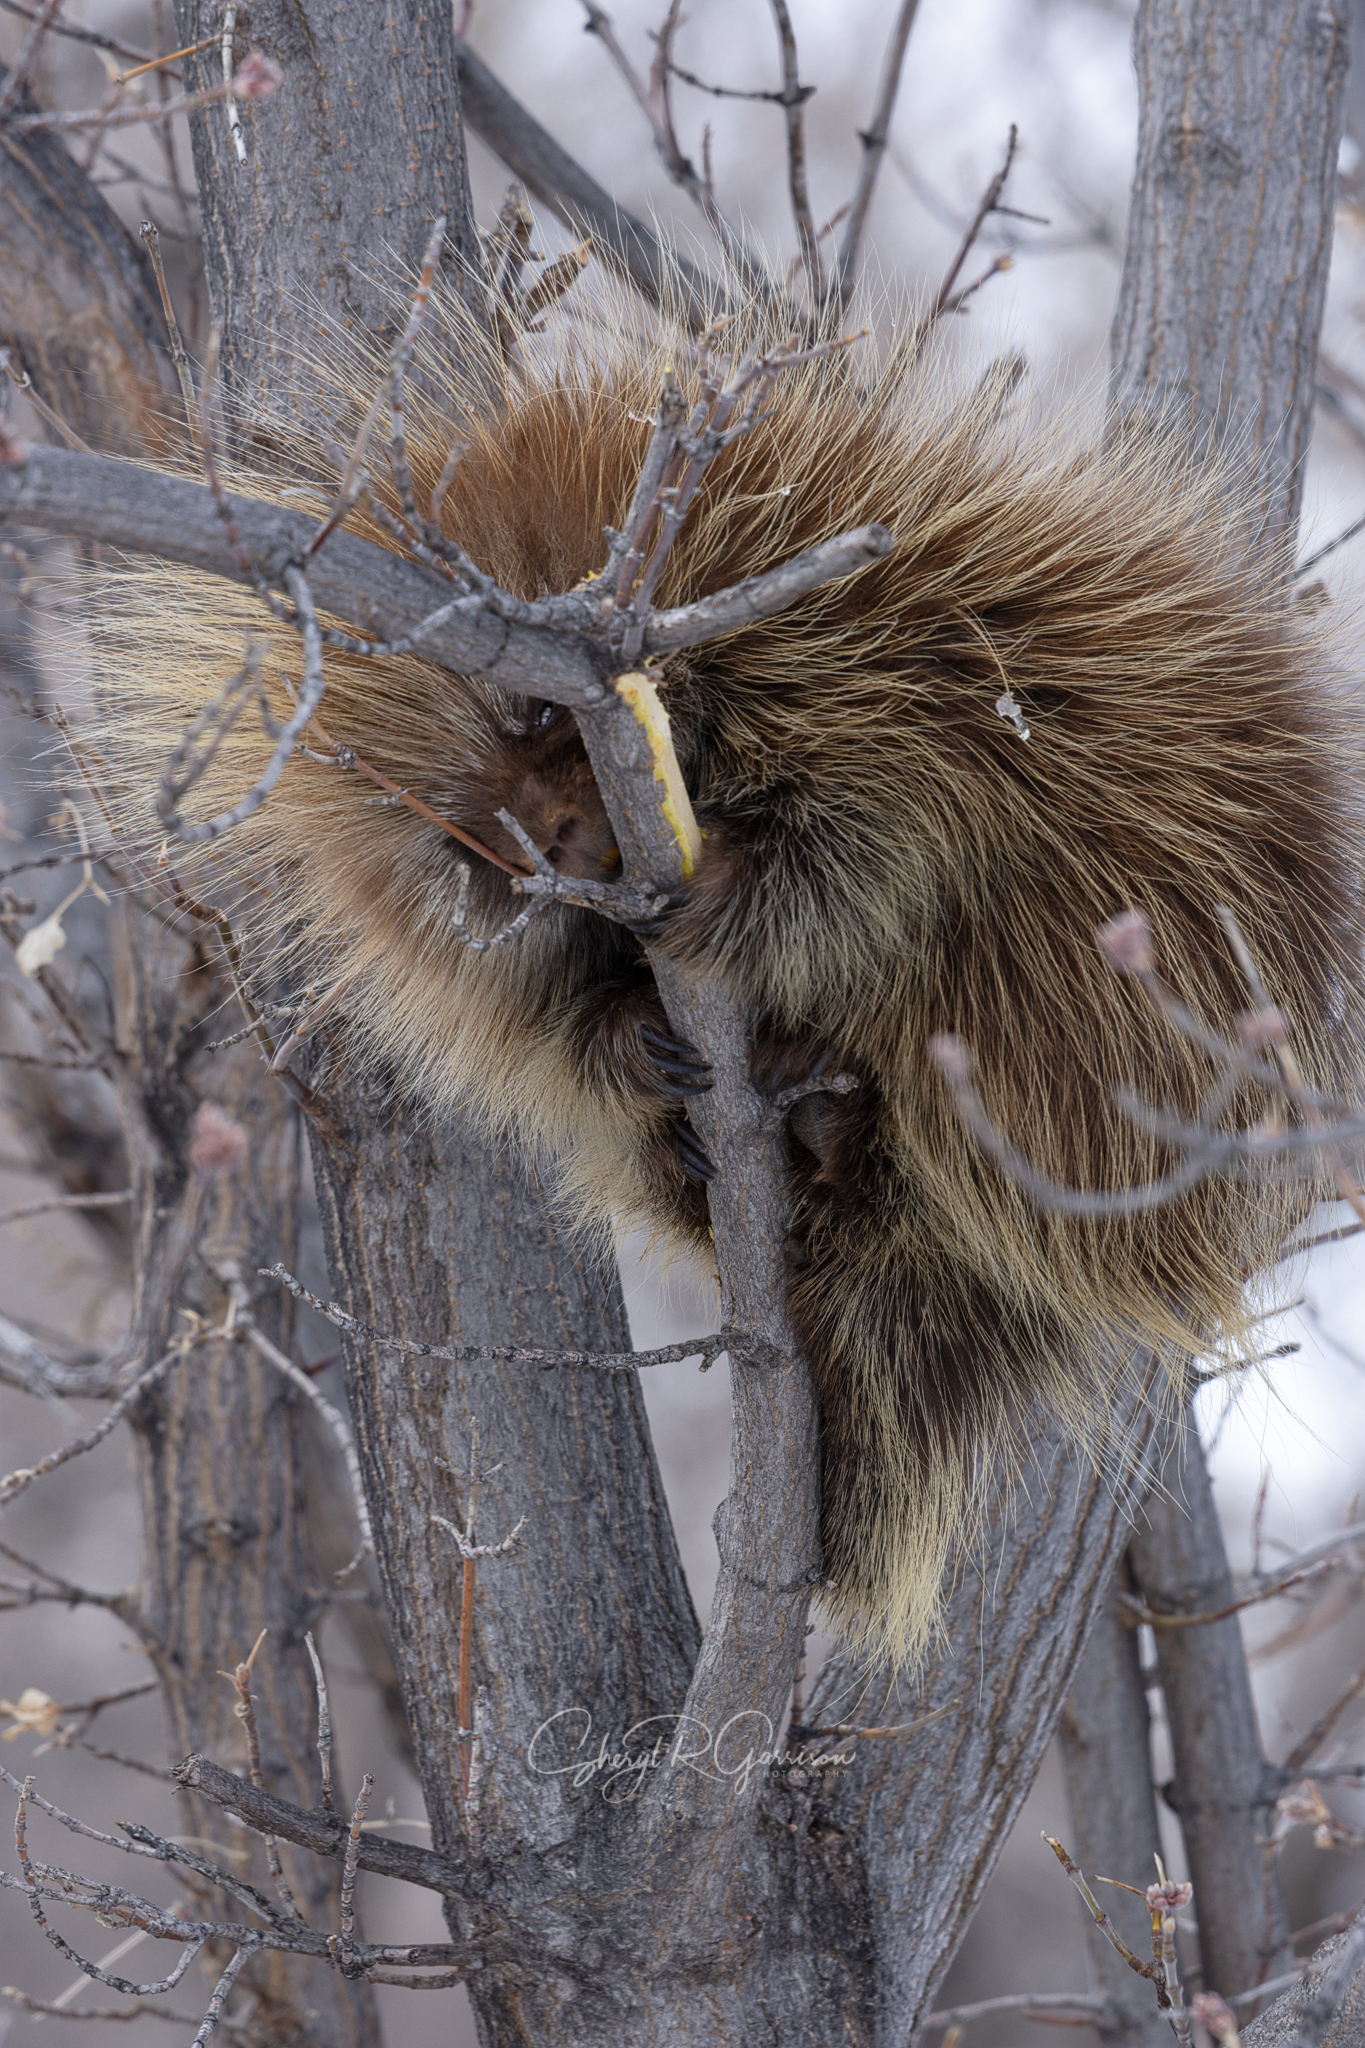 north american porcupine in tree